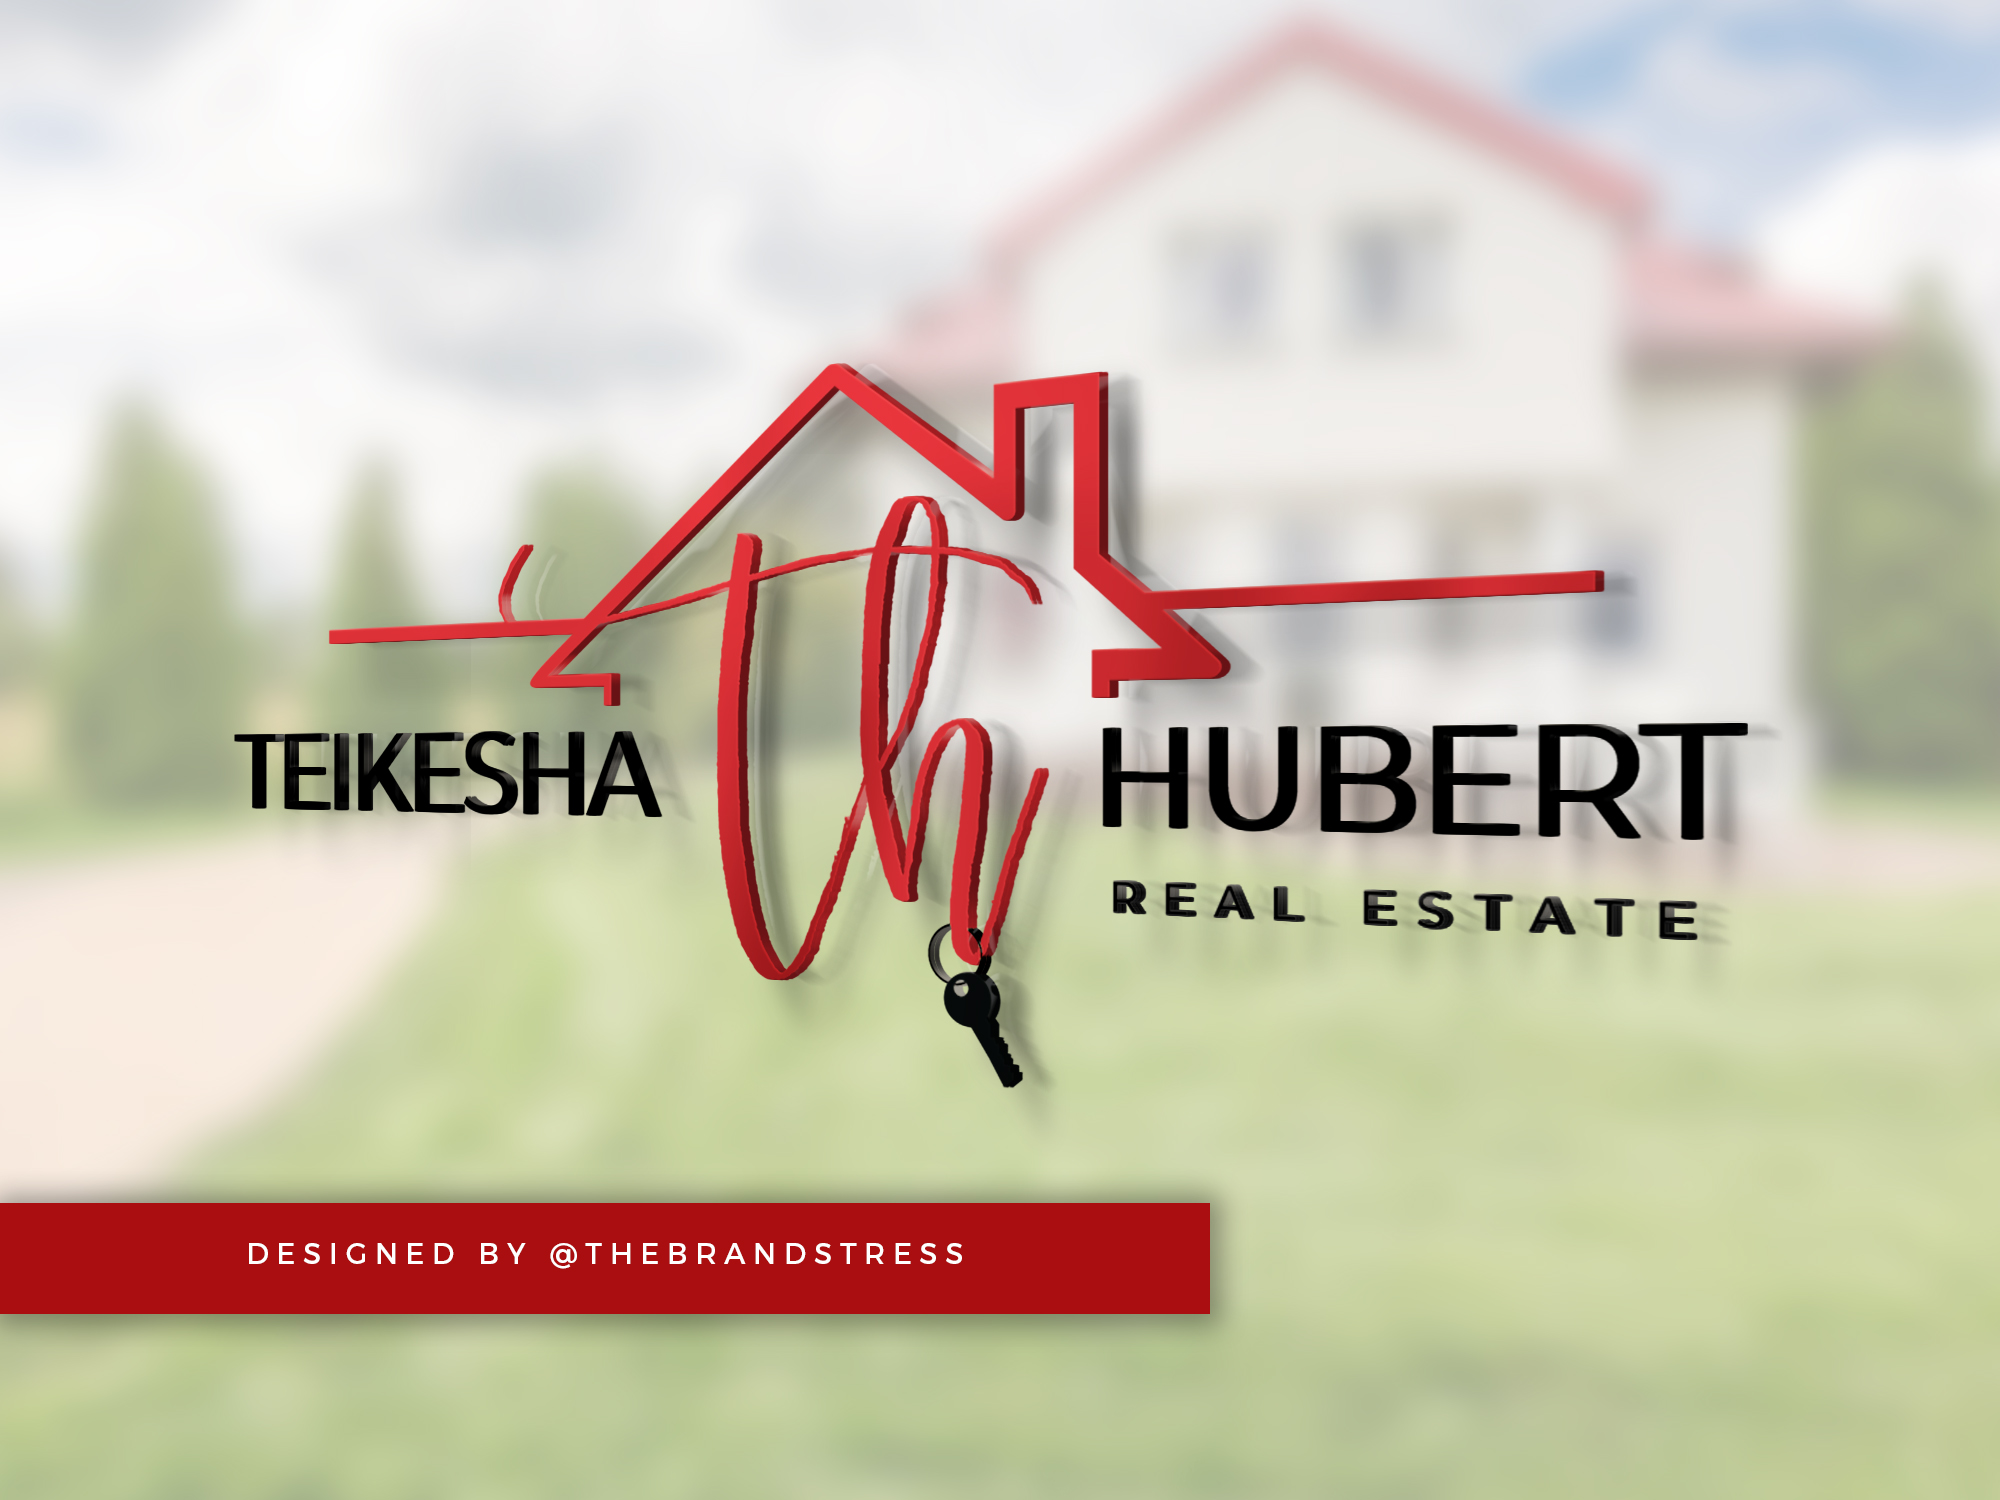 Teikesha Hubert Real Estate